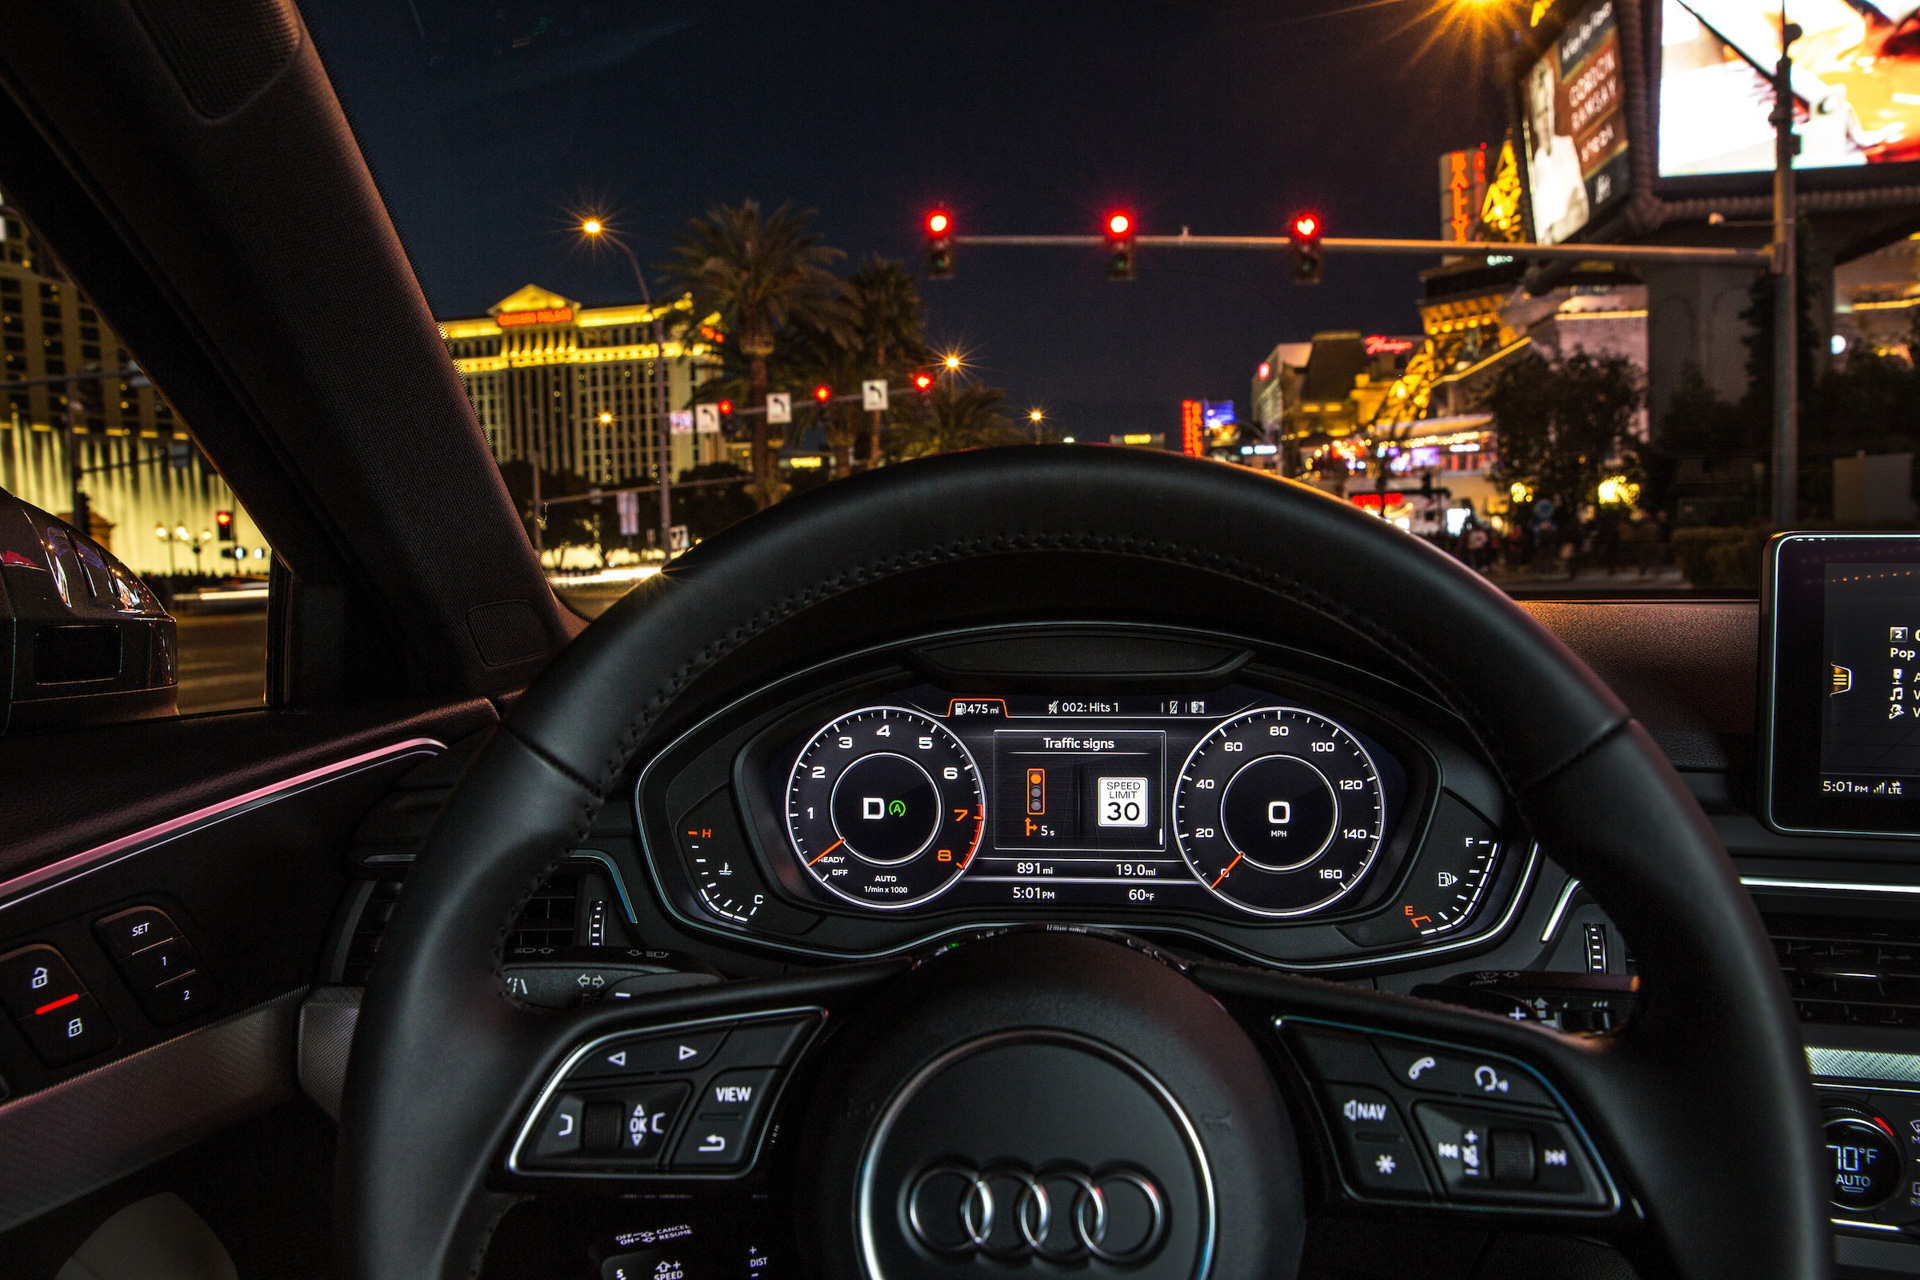 Audi's Traffic Light Information system link cars and infrastructure.